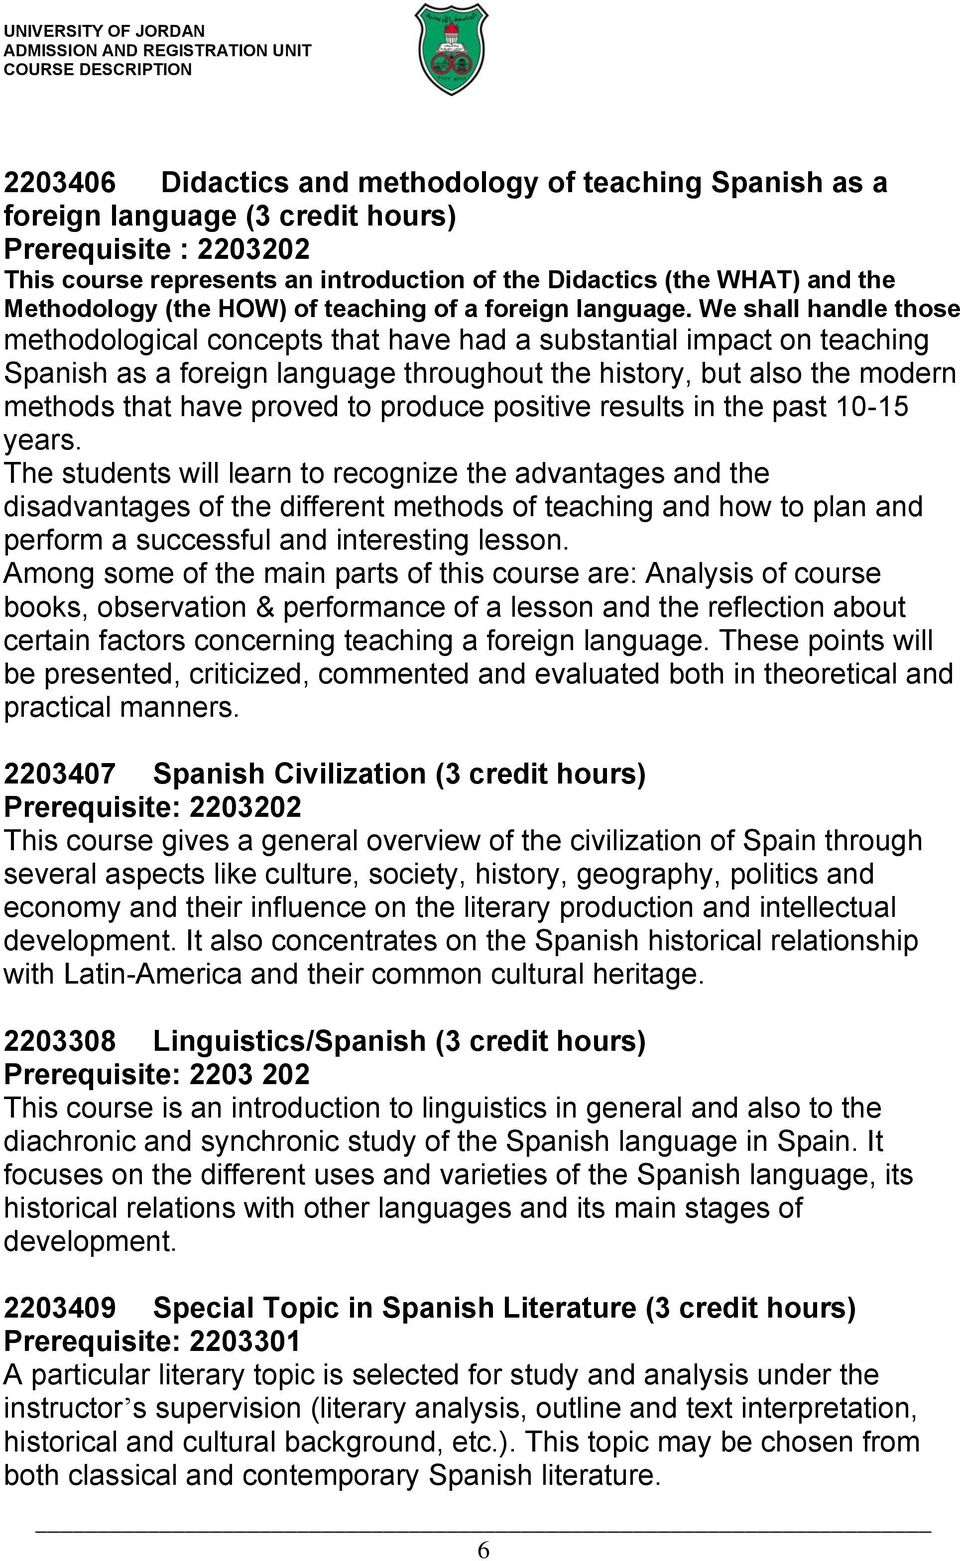 We shall handle those methodological concepts that have had a substantial impact on teaching Spanish as a foreign language throughout the history, but also the modern methods that have proved to